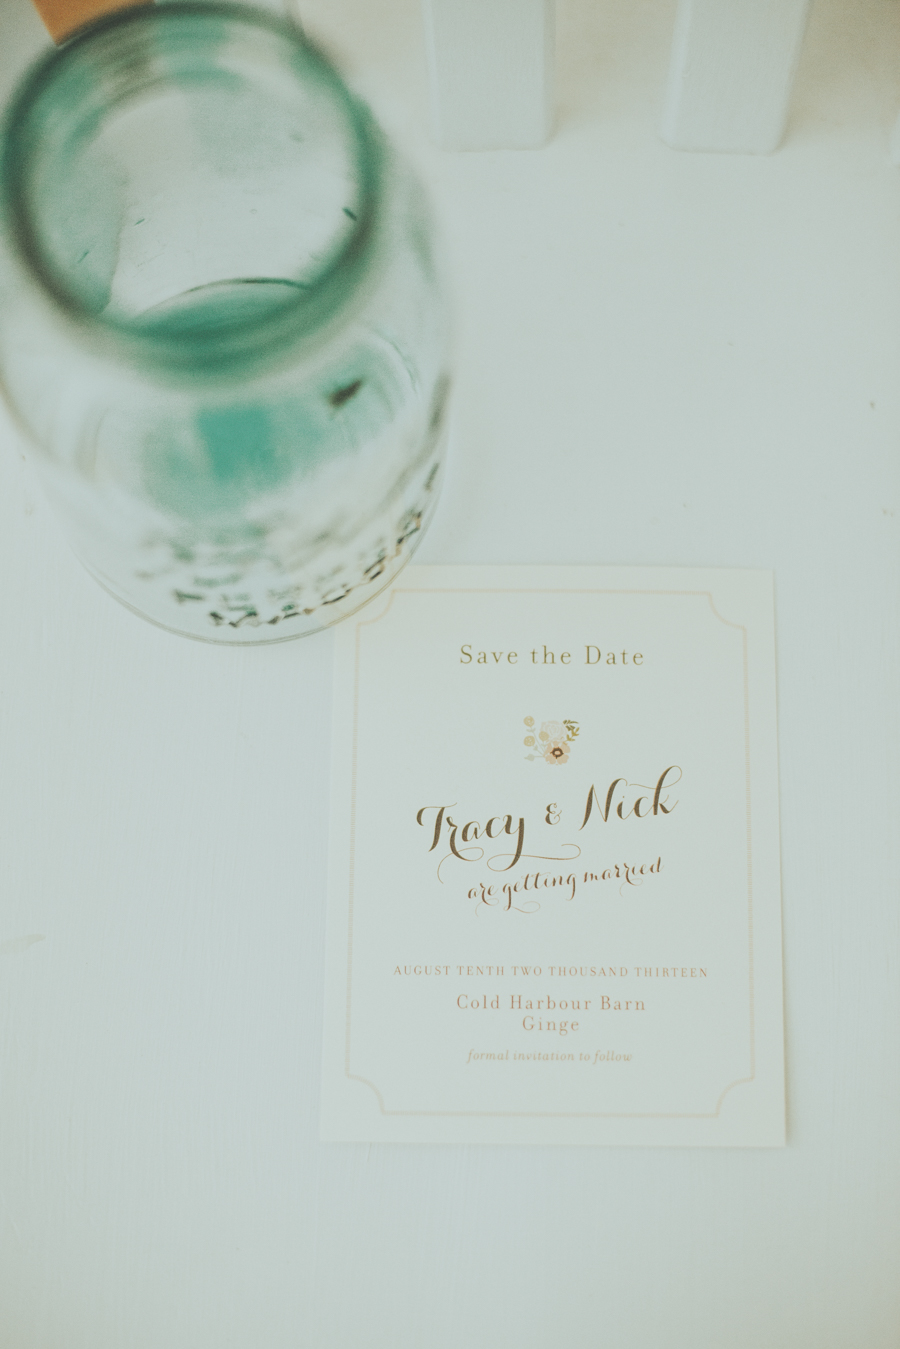 Cool vintage details at weddings-1001.jpg